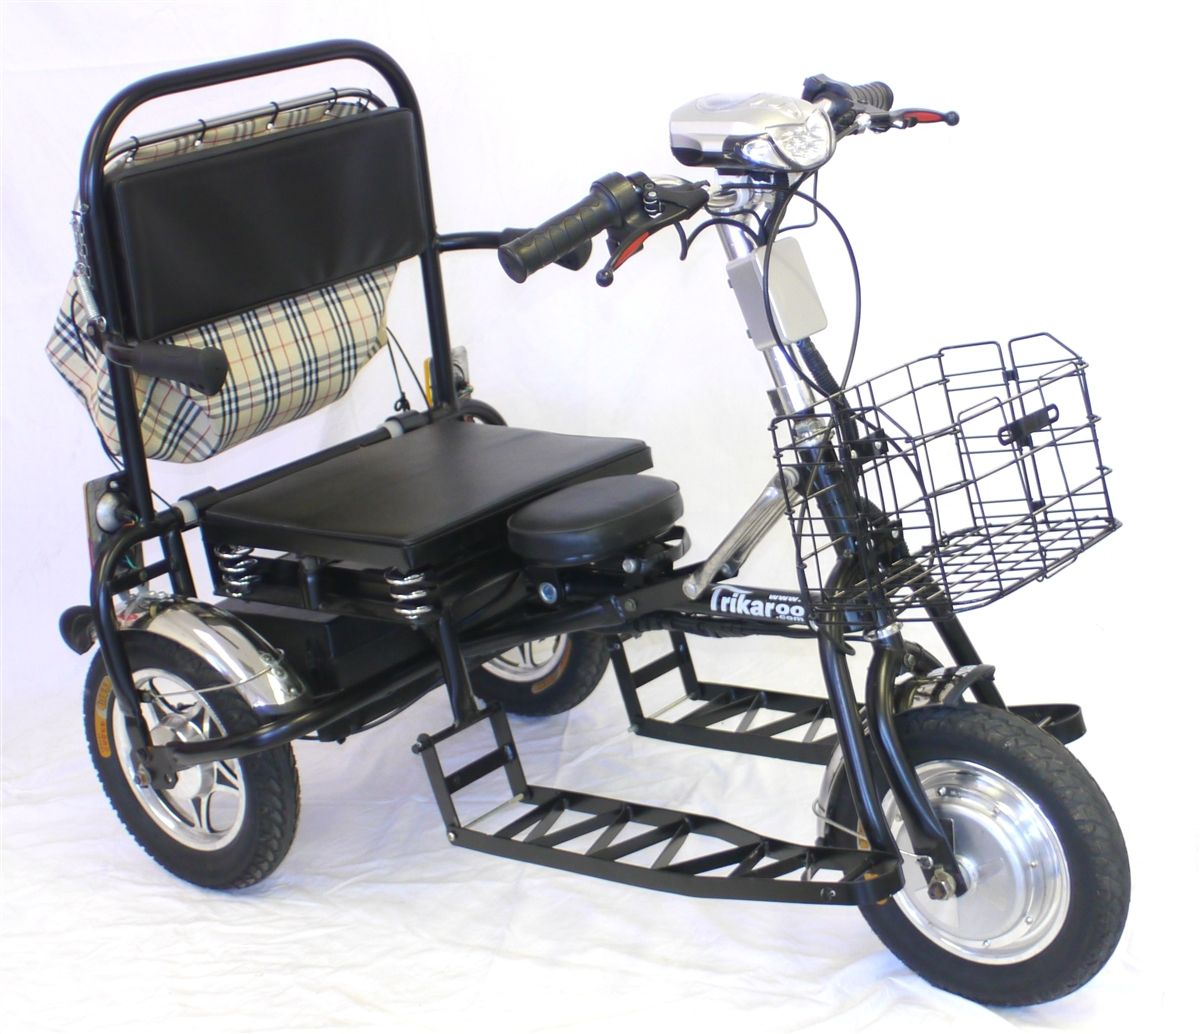 Ada A D Golf Cart Wheelchair Pedicab Pedecab Tandem Mobility Scooter Two Seater Electric Convenience Vehicle